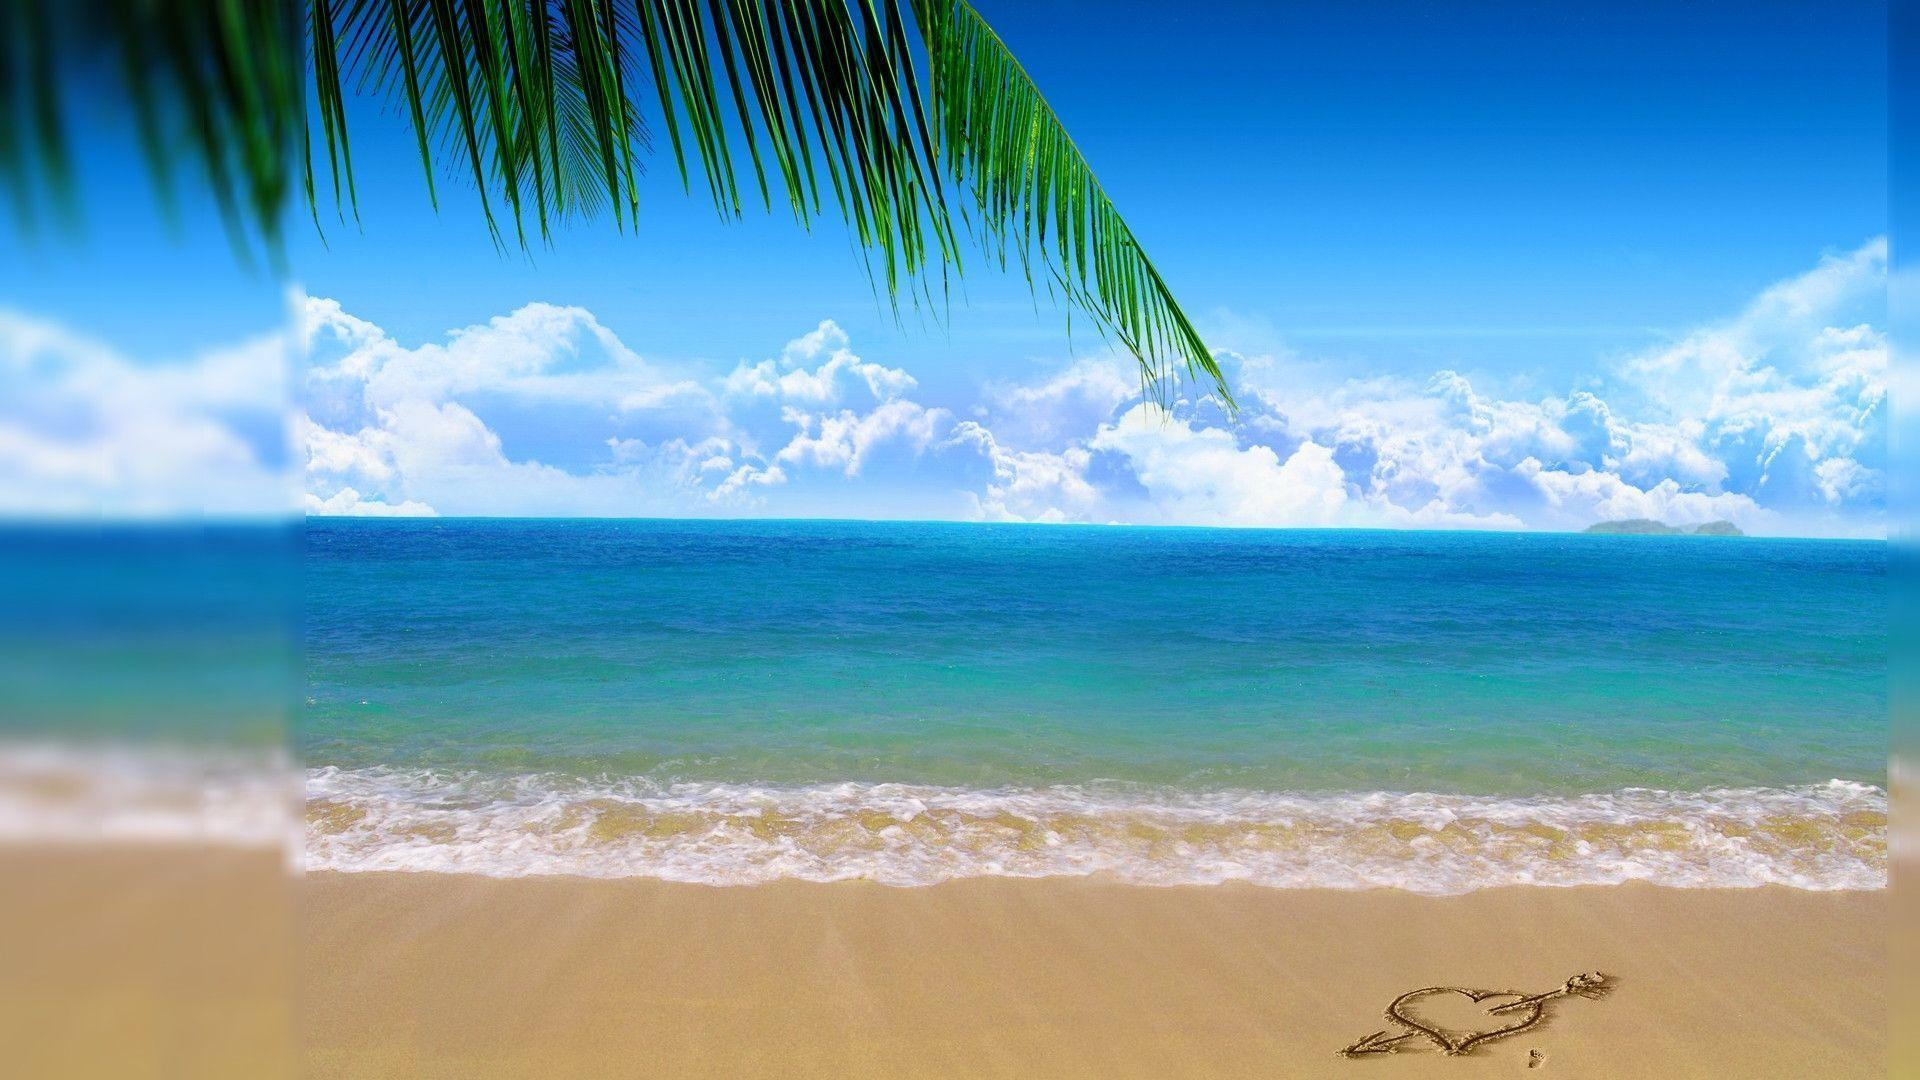 Beach Backgrounds For Desktop